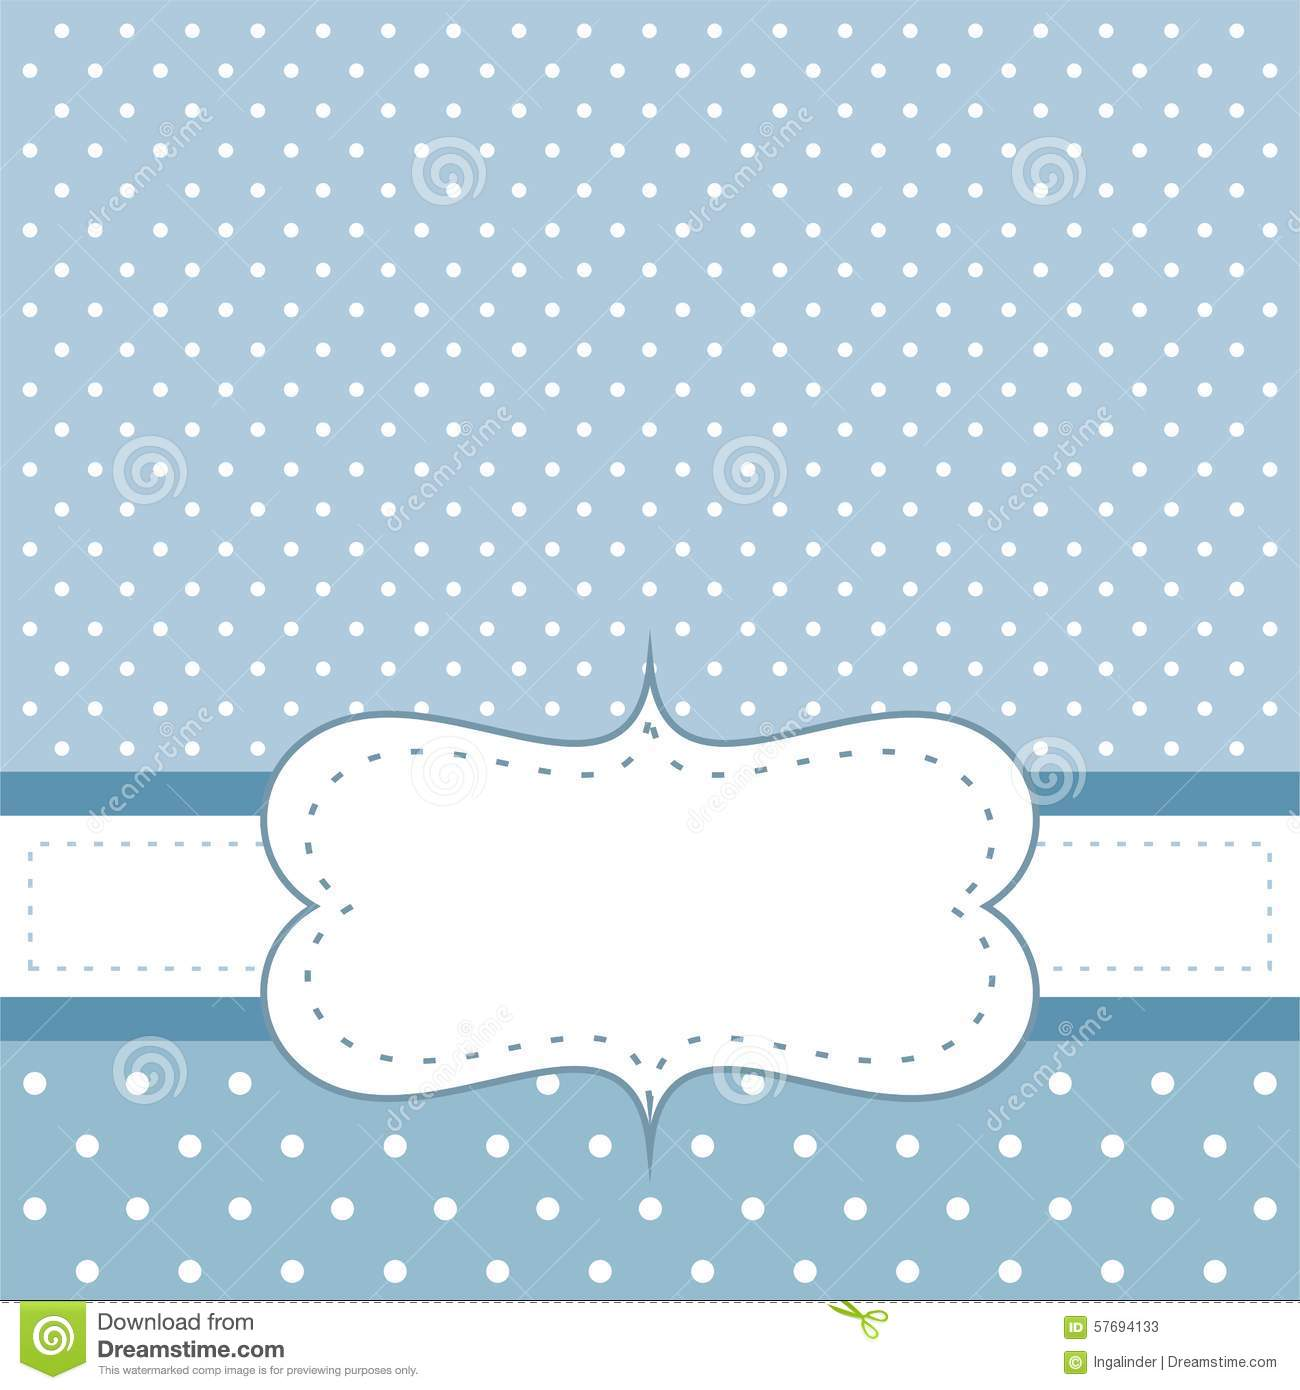 Sweet Blue Dots Vector Card Or Invitation With White Polka Dots